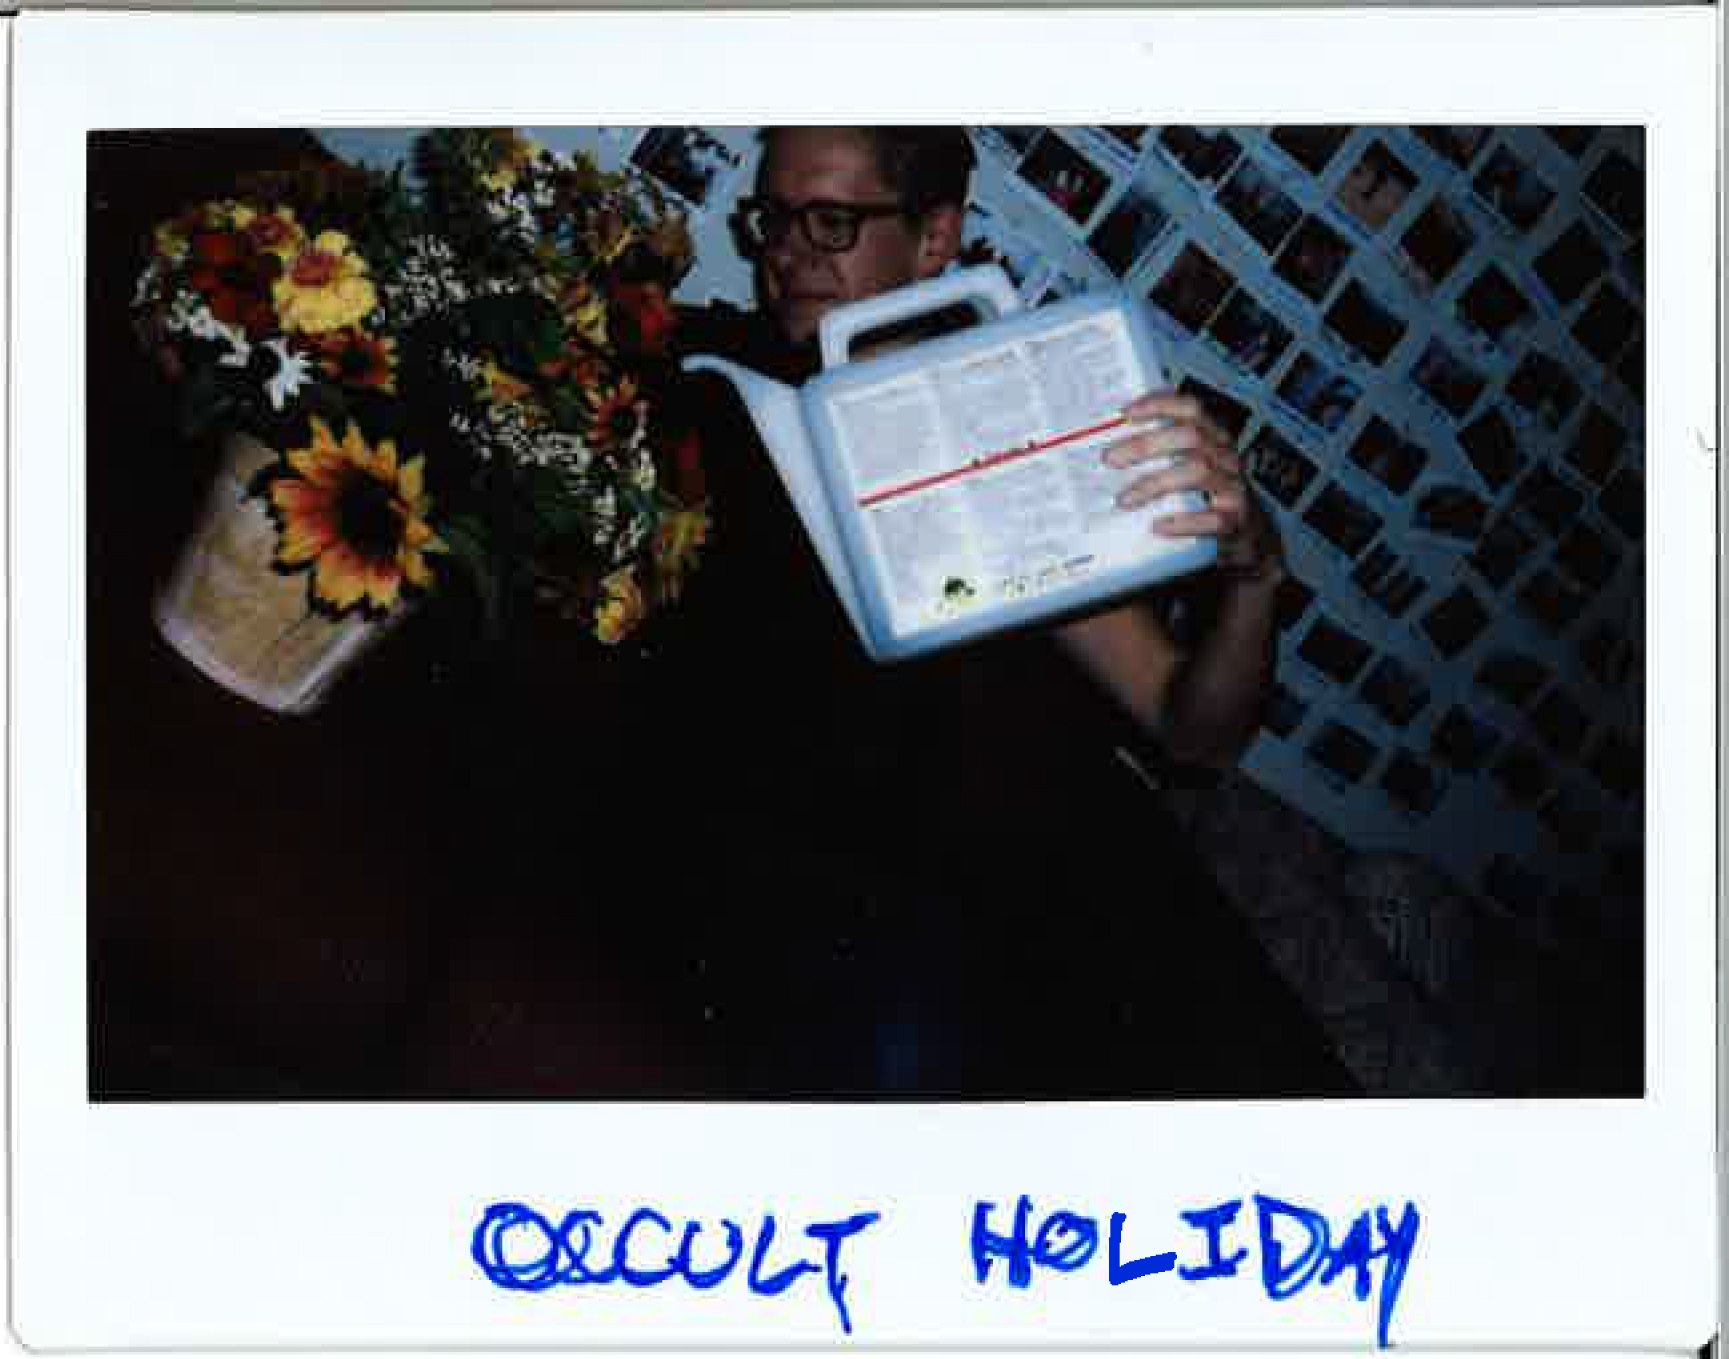 Occult Holiday